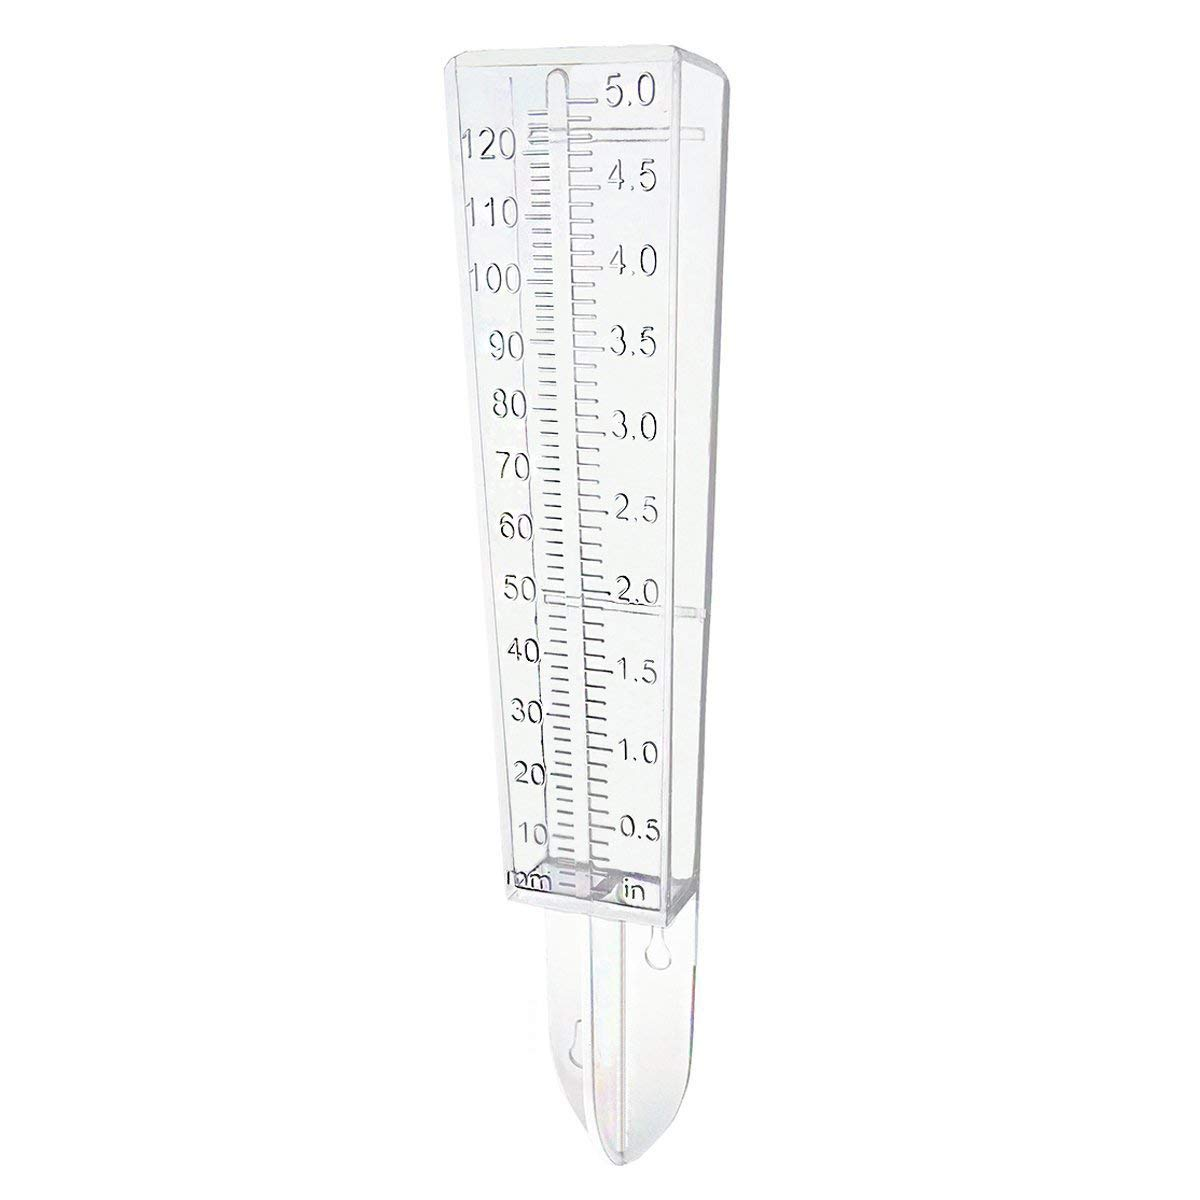 Outdoor Rain Gauge for Yard Capacity Wall Mount or in Ground (White)